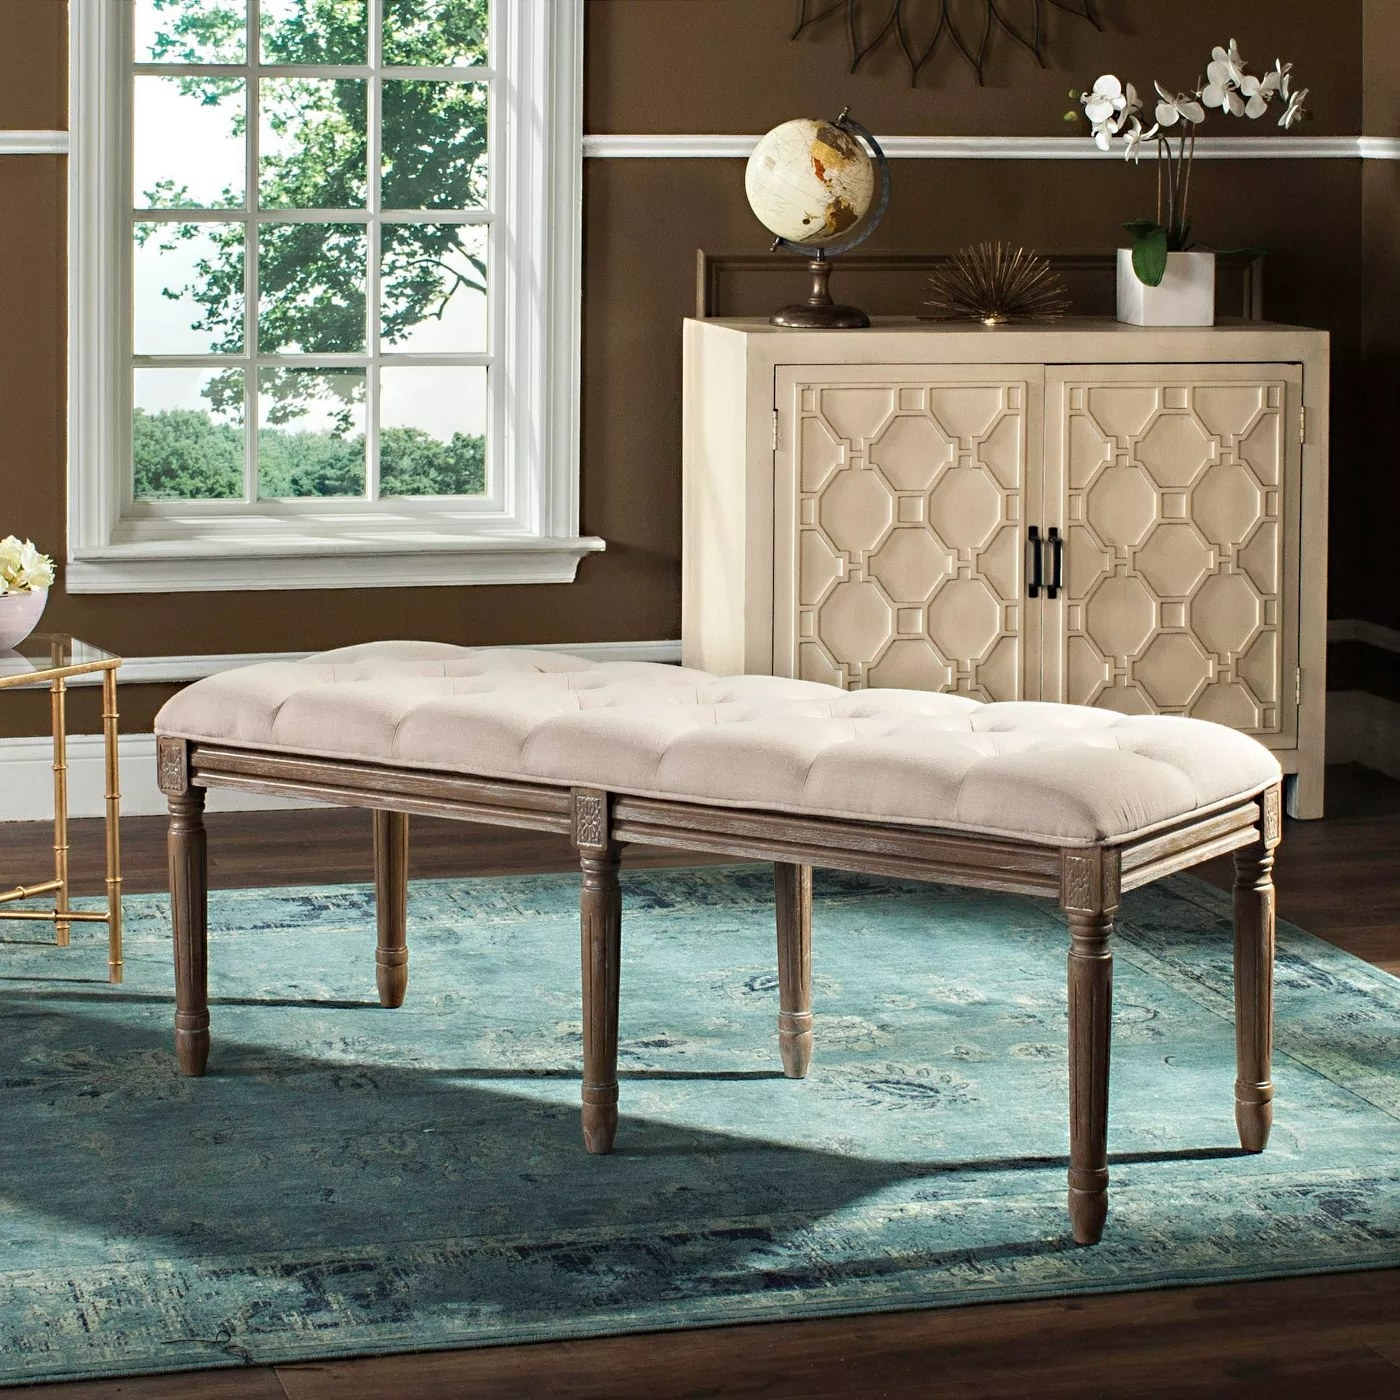 The wood bench with a beige cushion